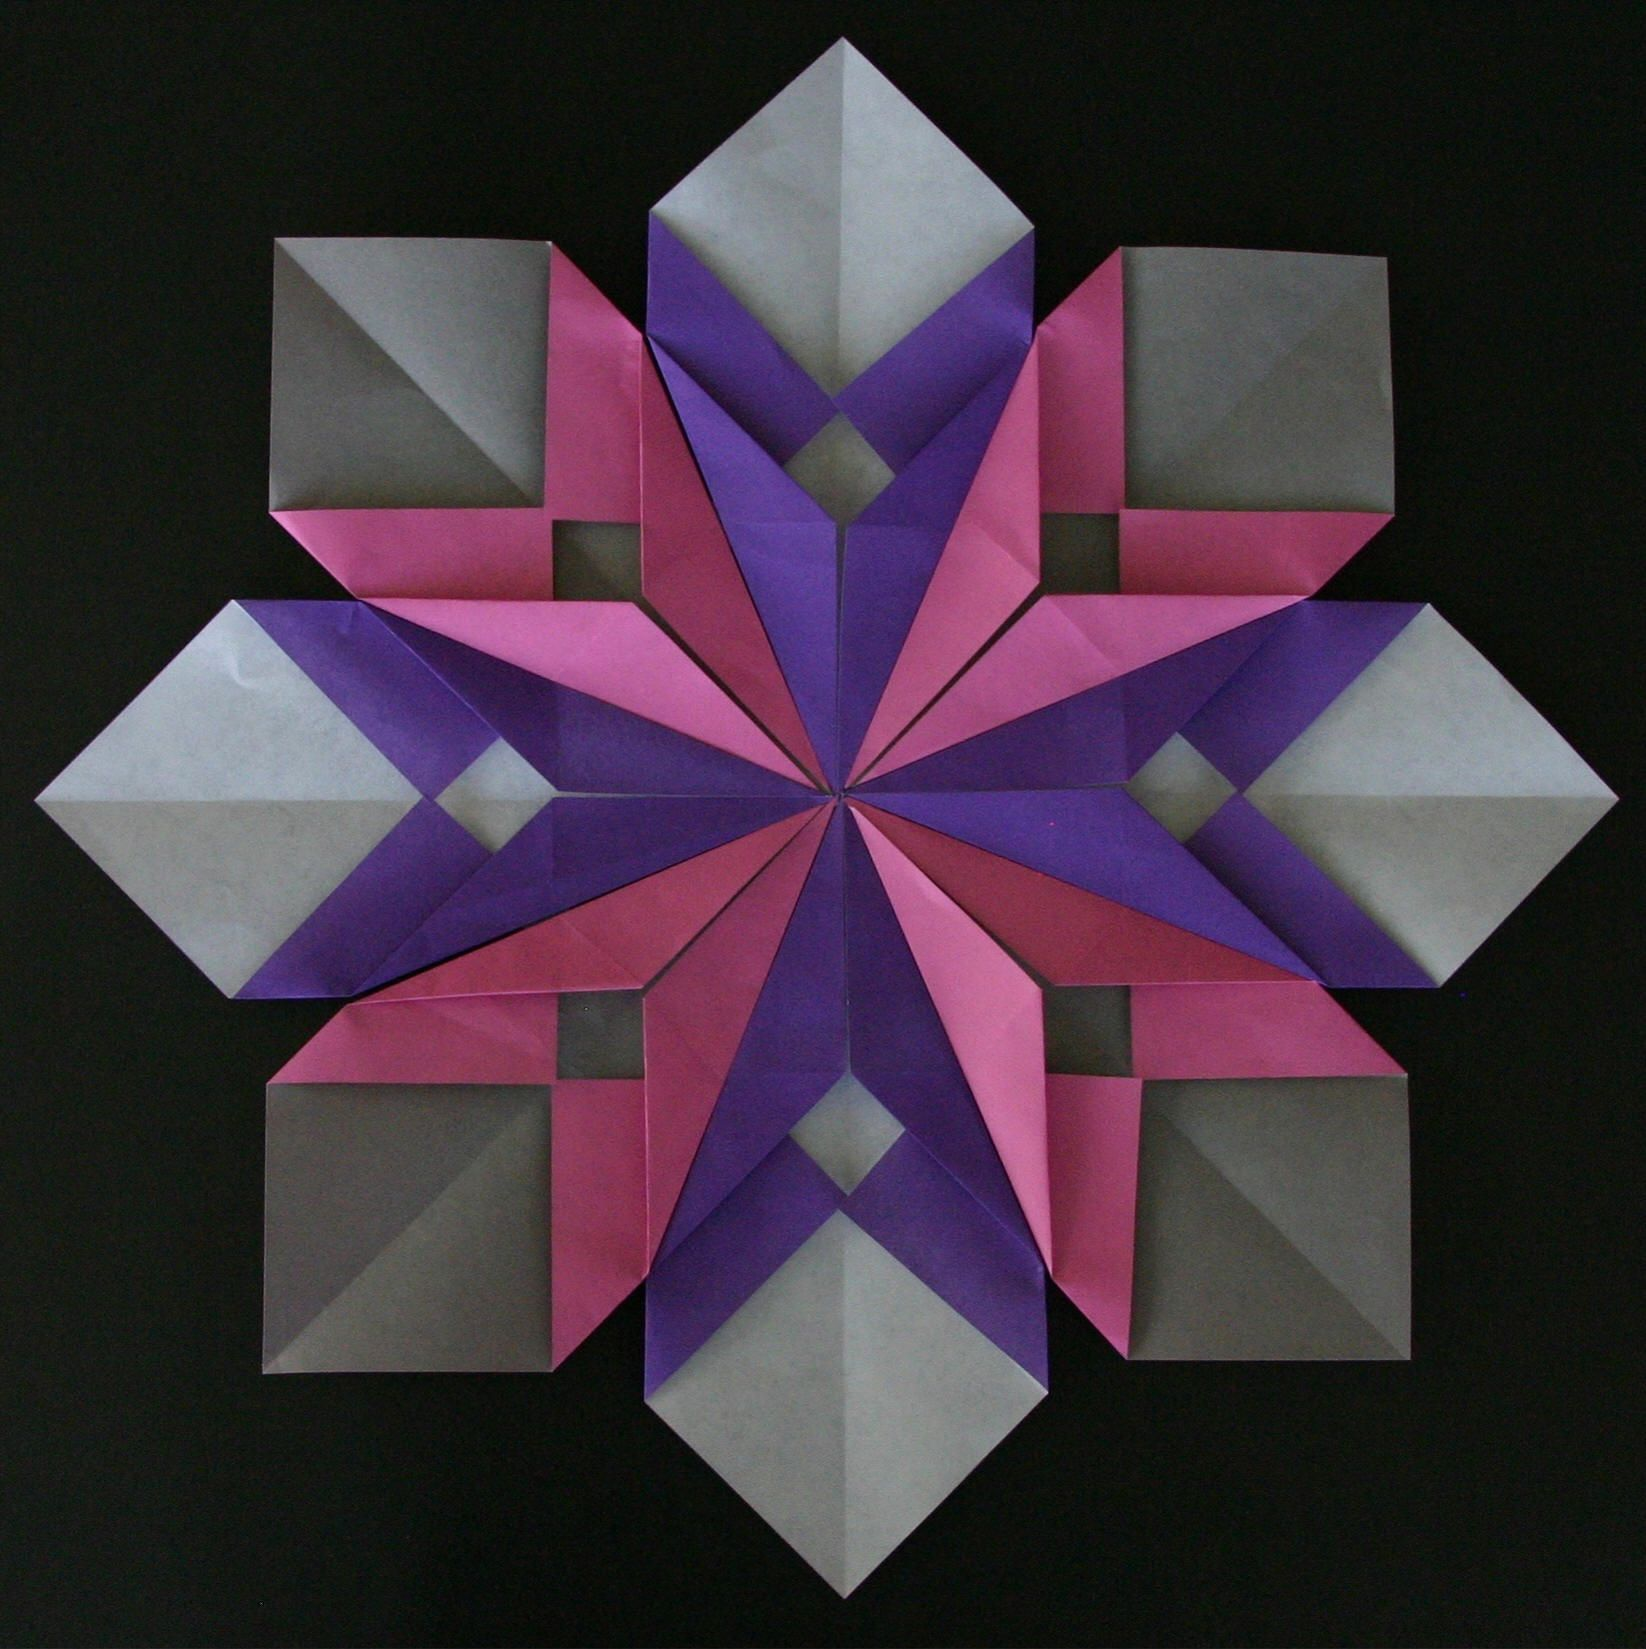 Origami Flower Arts And Crafts Pinterest Origami Flower And Craft